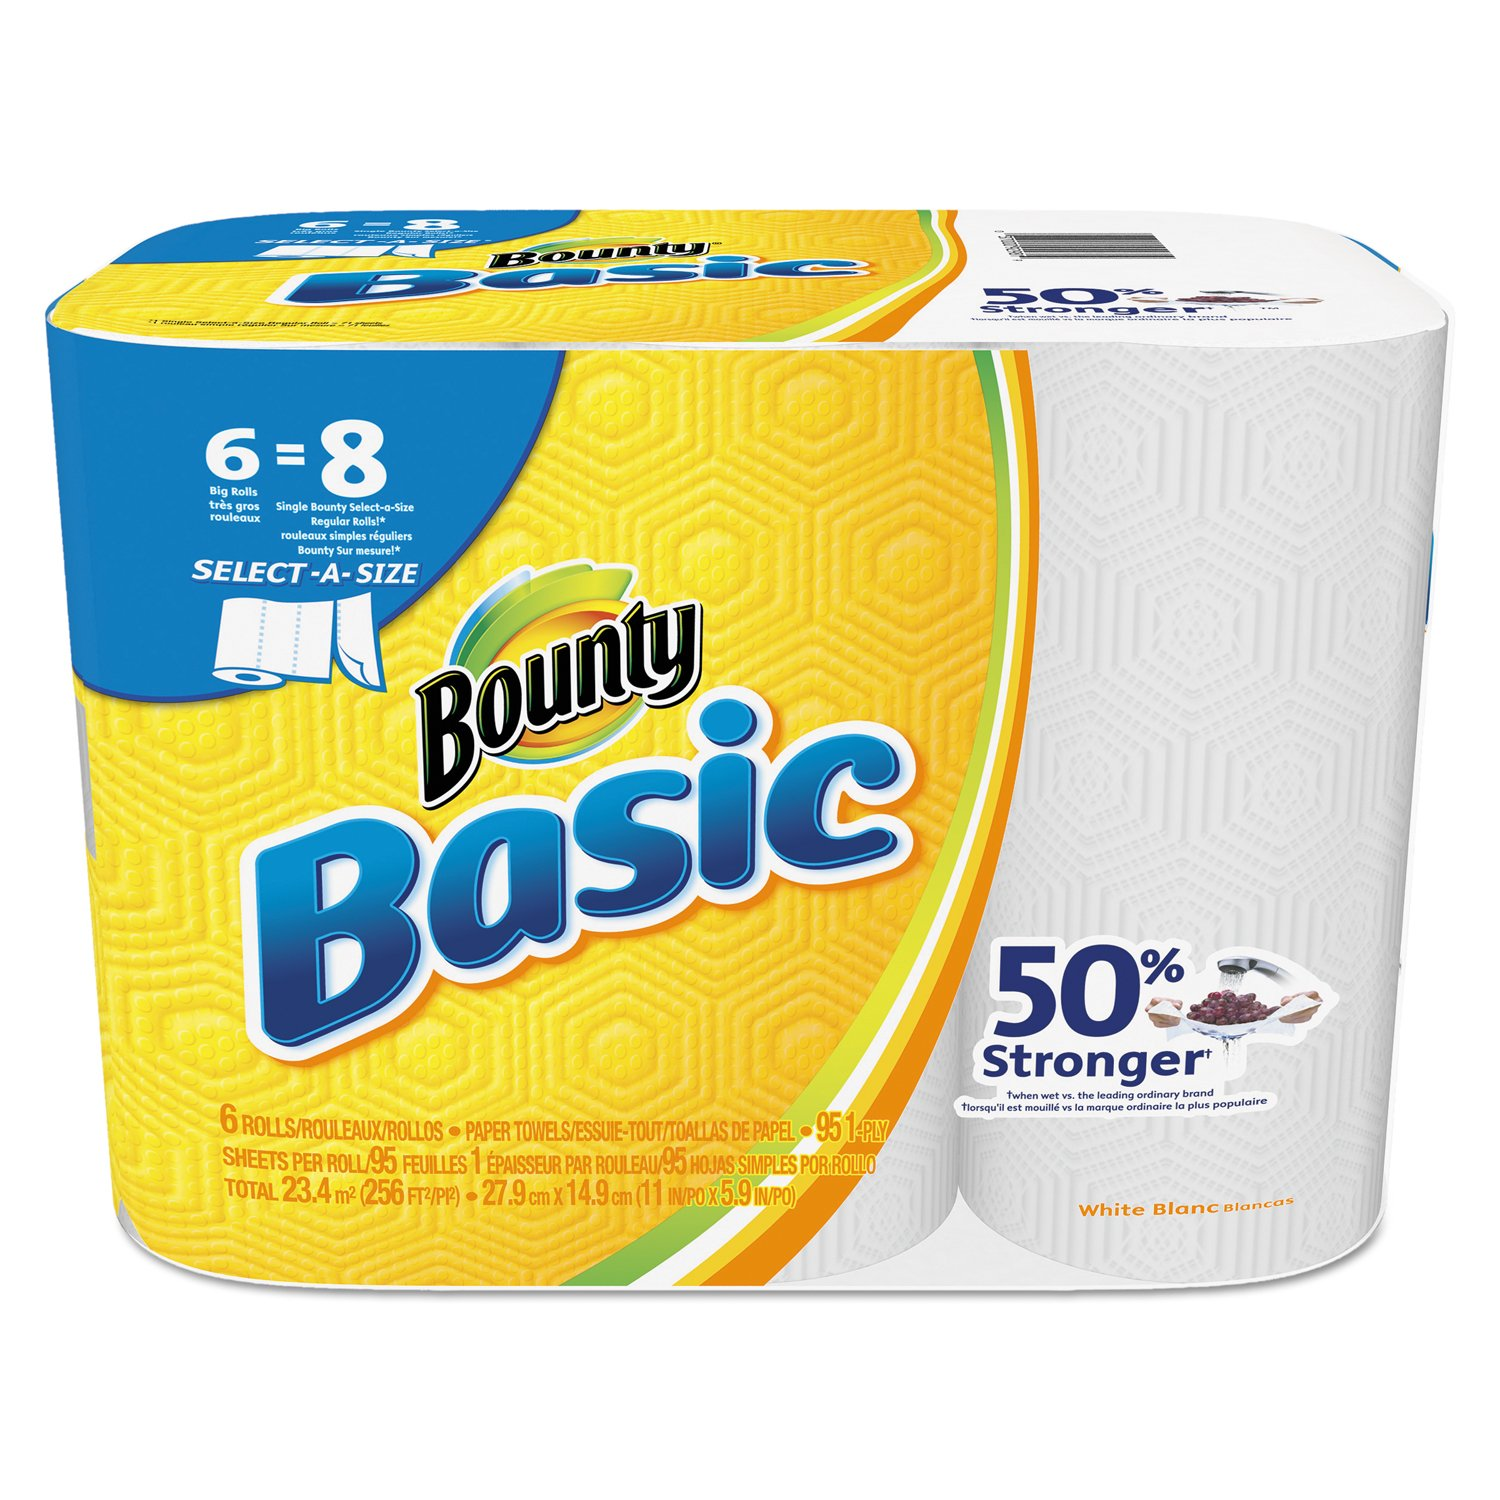 "Bounty 92981 Basic Select-A-Size Paper Towels, 5 9/10"" x 11"", 1-Ply, White (Pack of 6)"